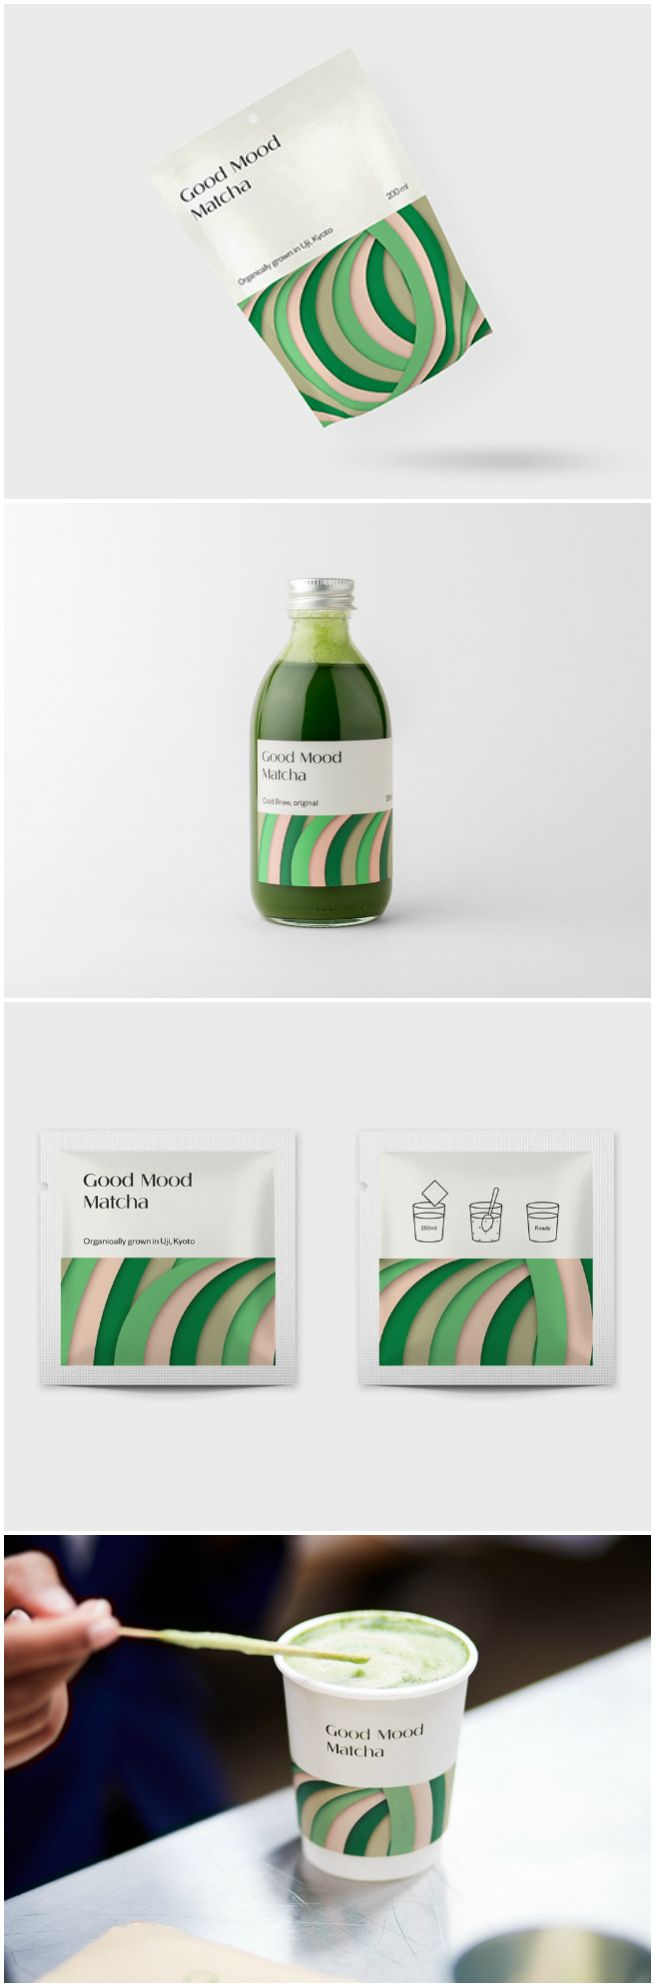 good mood matcha from kyoto to the london market world brand design drinks packaging design branding design packaging design inspiration